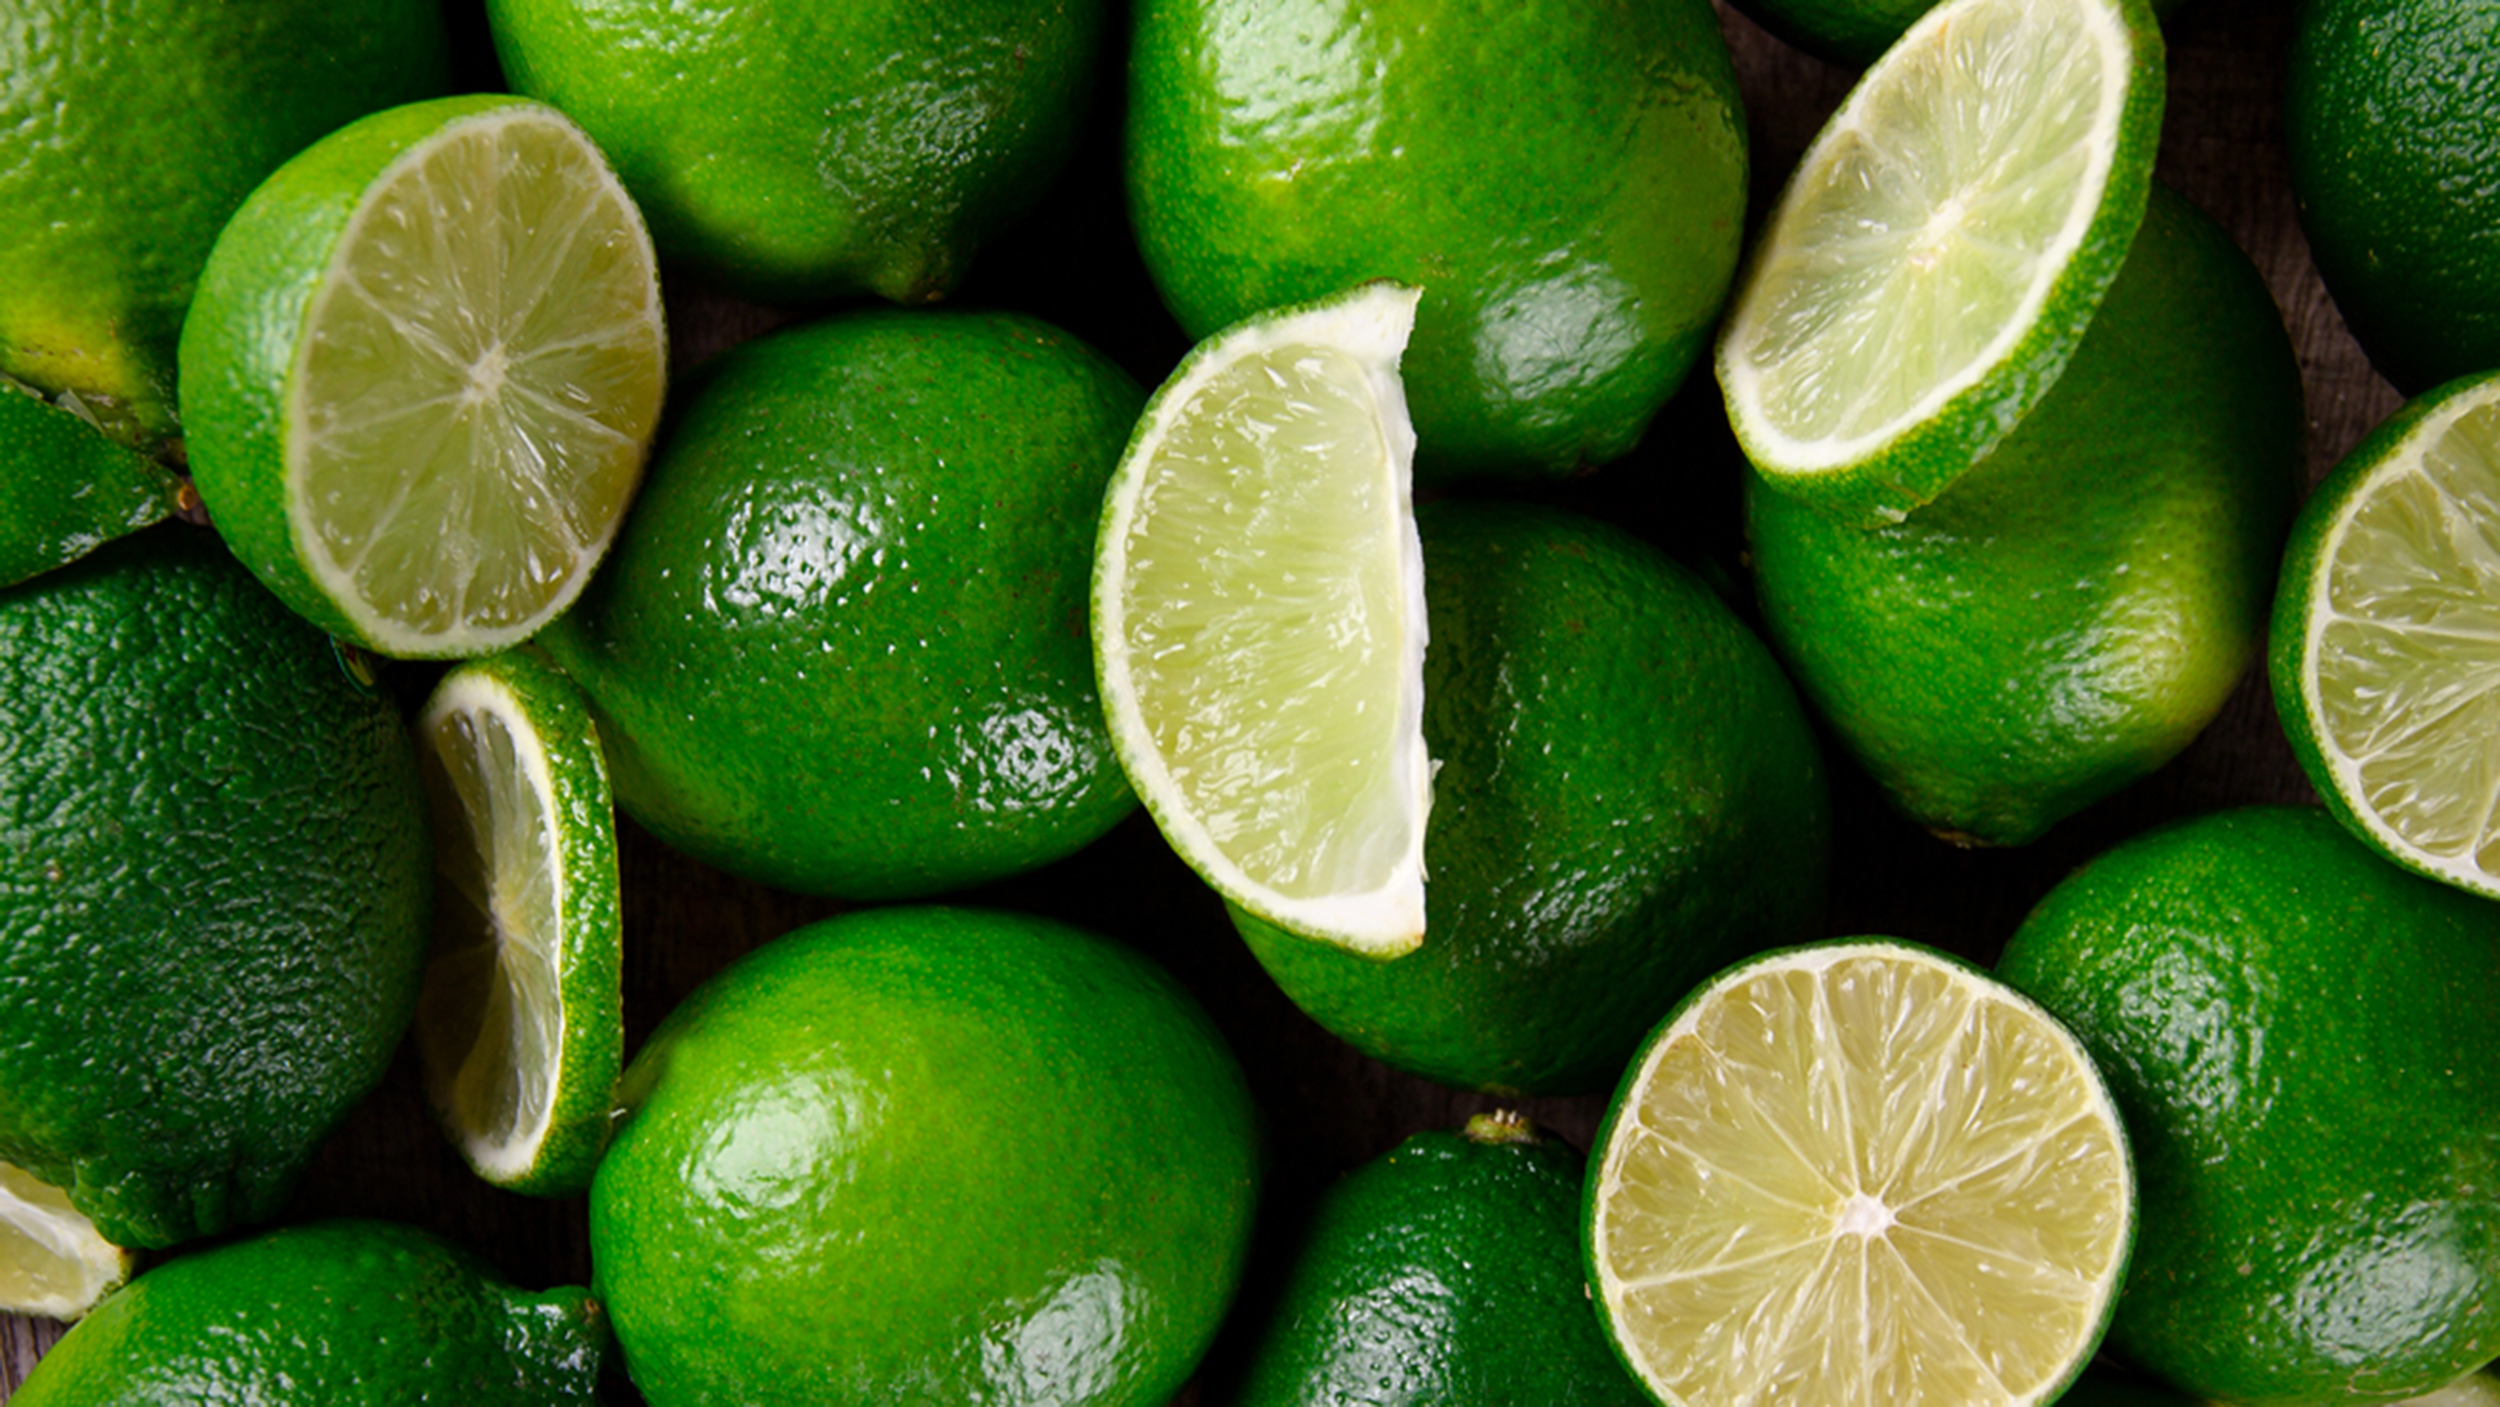 DIY 7 surprising household uses for limes  TODAYcom